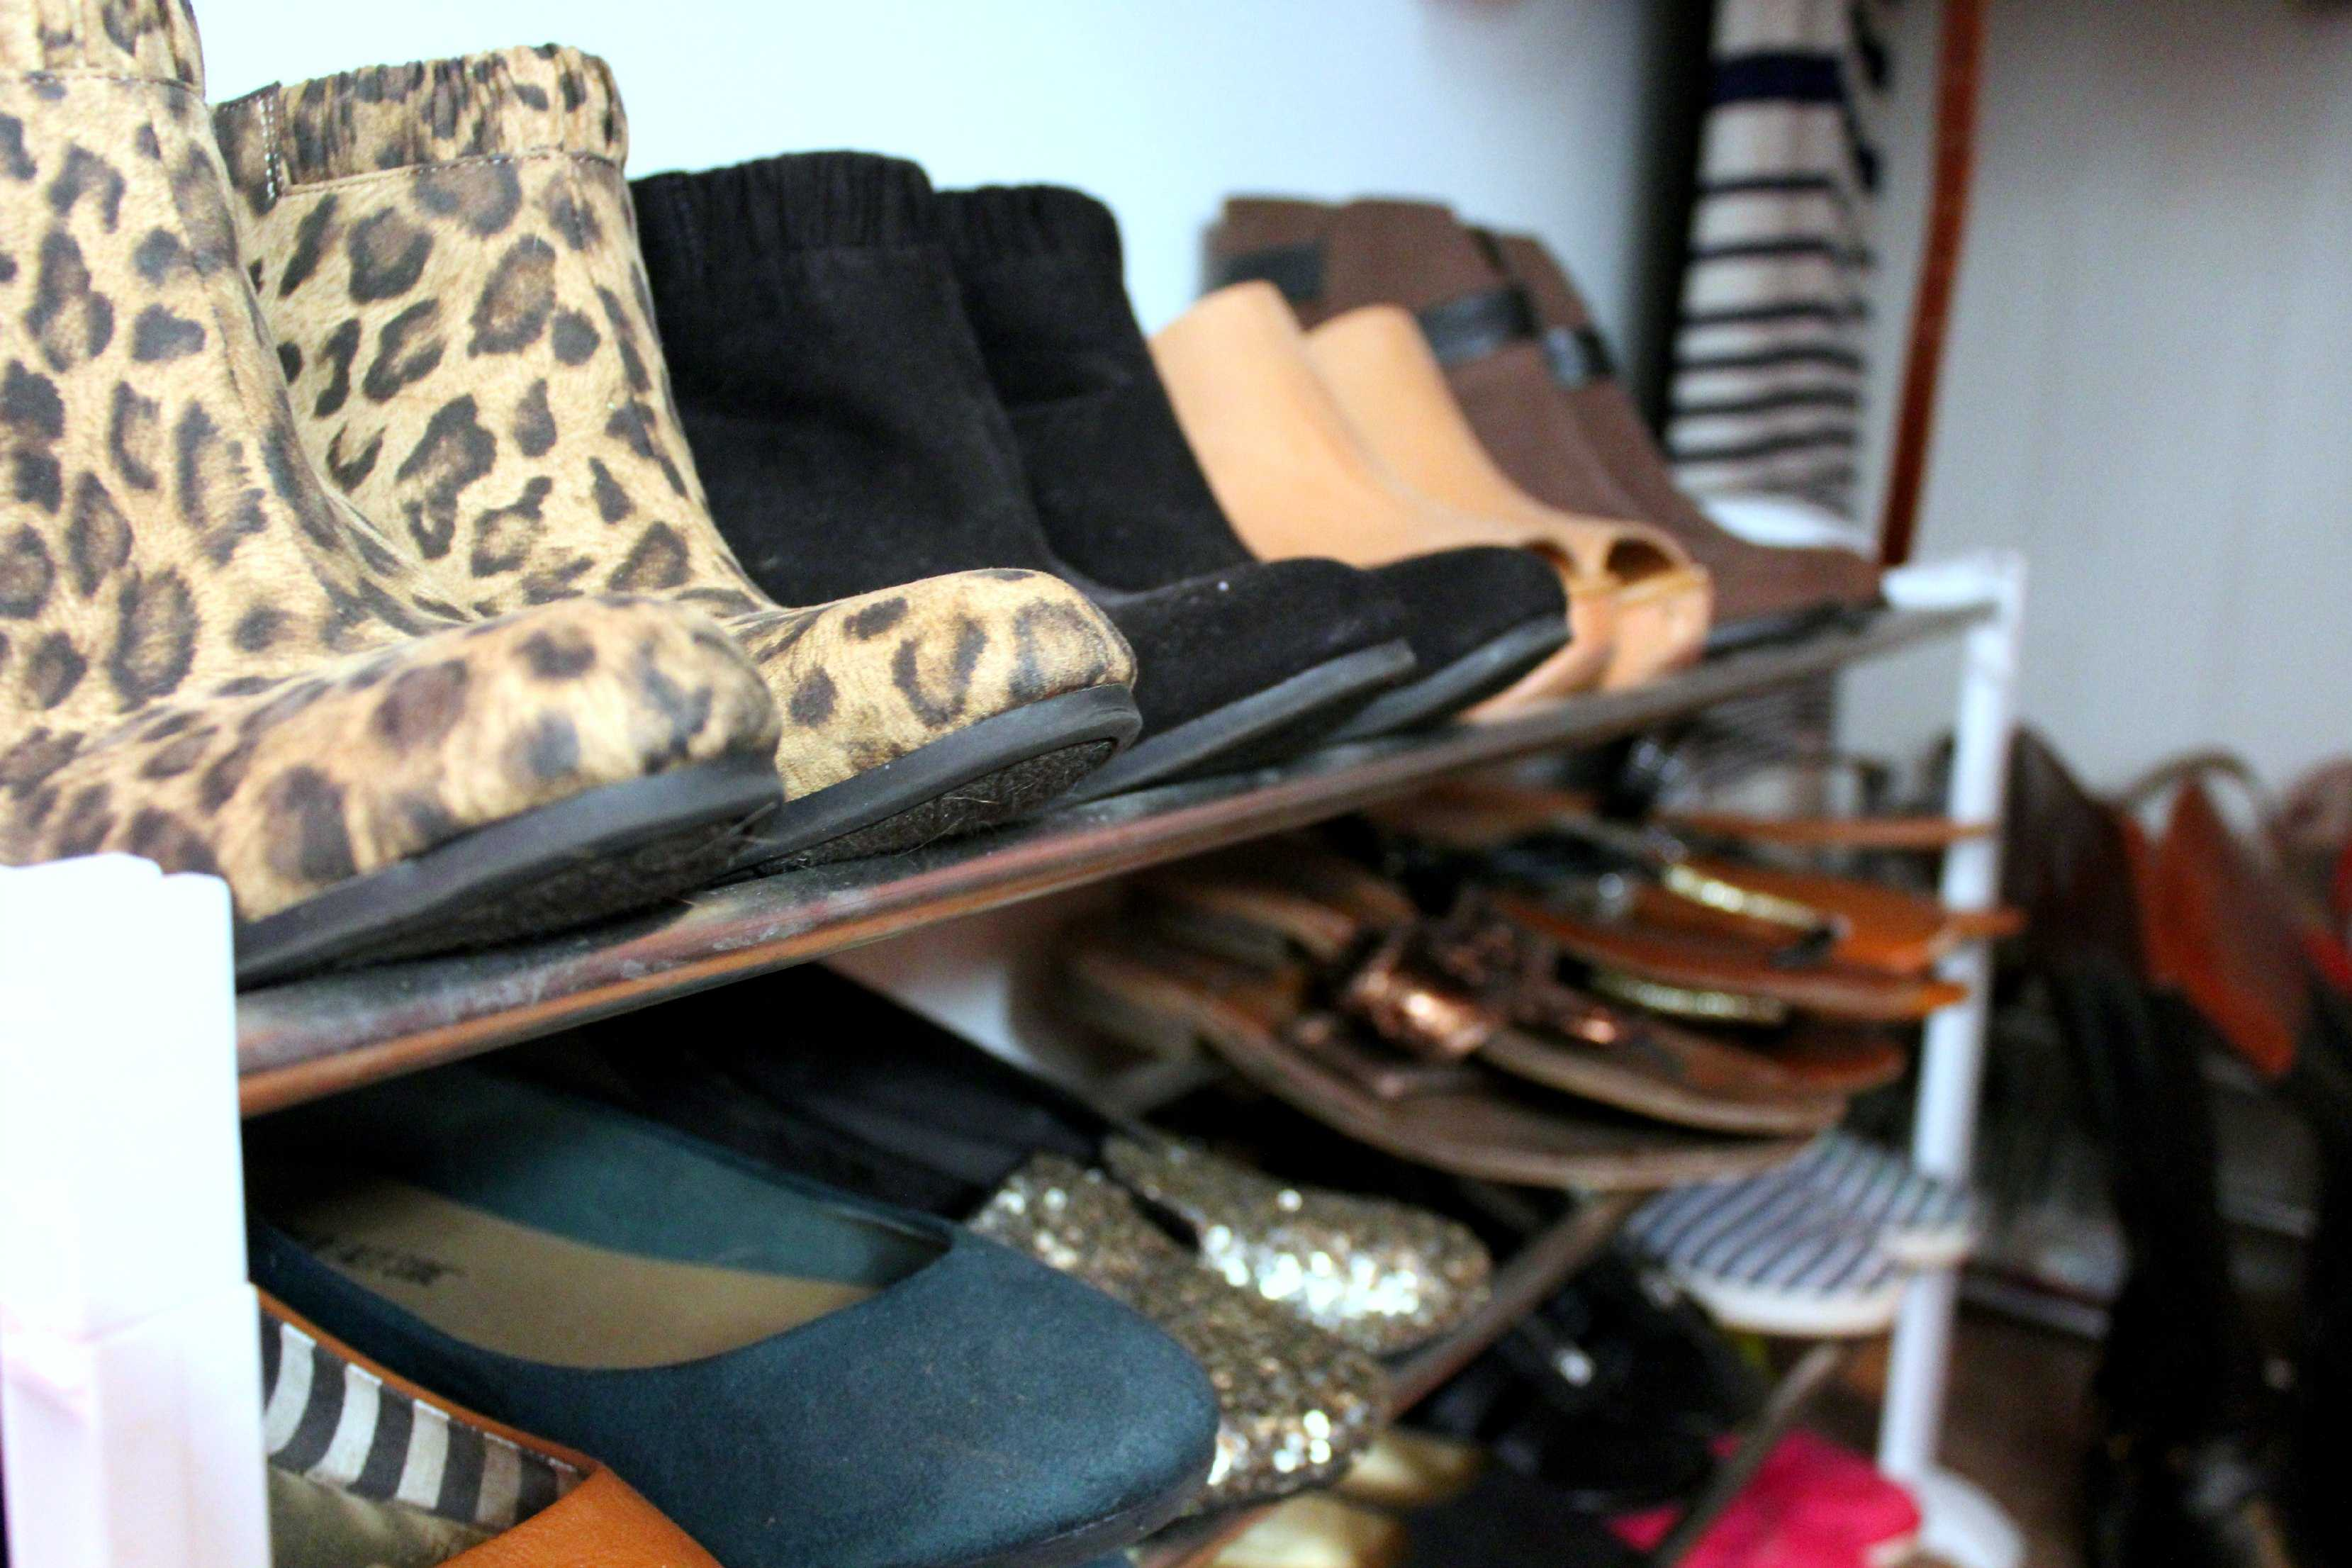 Spinnaker Style: Buy the shoes